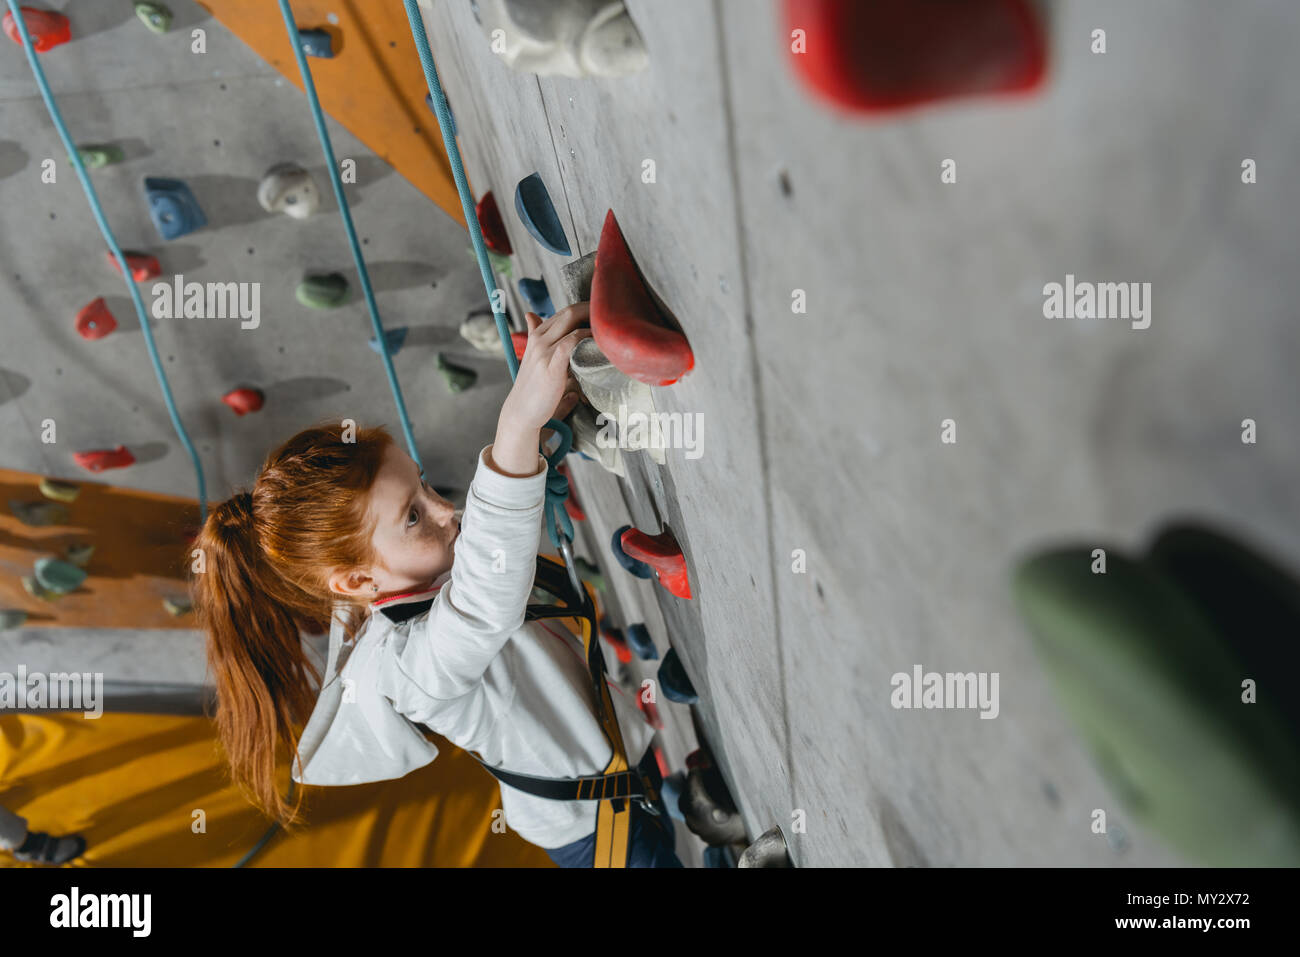 High angle shot of little girl in a harness climbing a wall with grips at gym - Stock Image